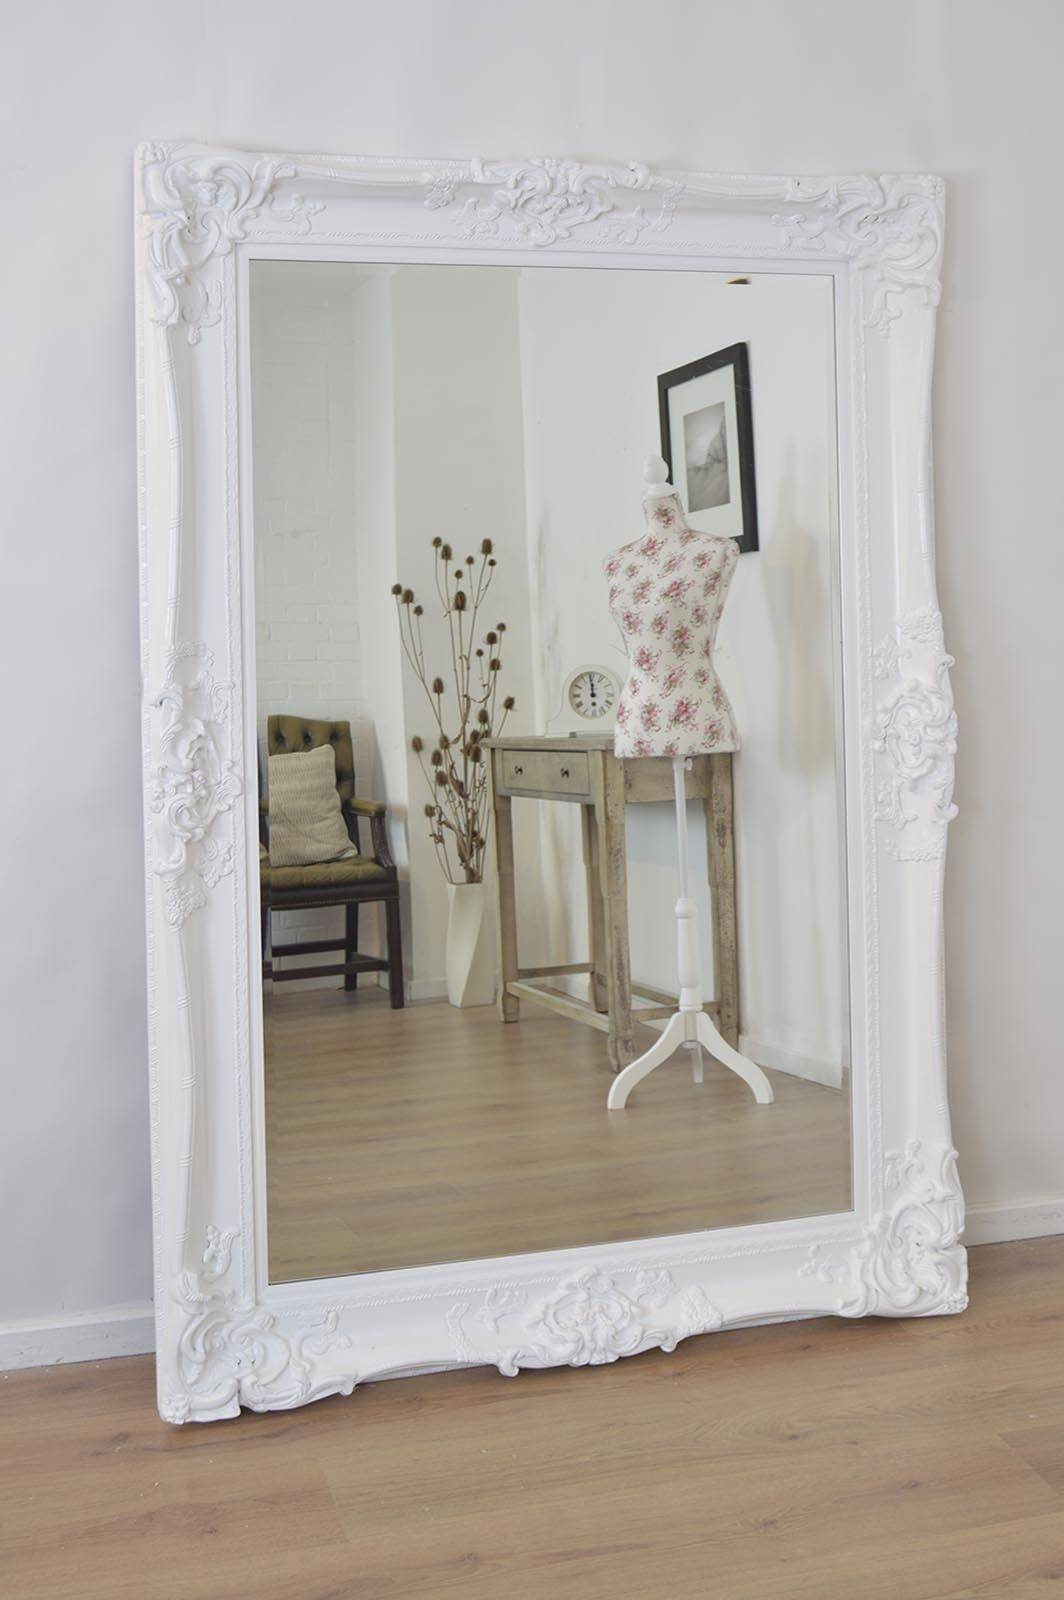 Mirror : White Distressed Shabby Chic Mirror | Best Home Magazine Regarding Shabby Chic White Distressed Mirrors (View 13 of 15)